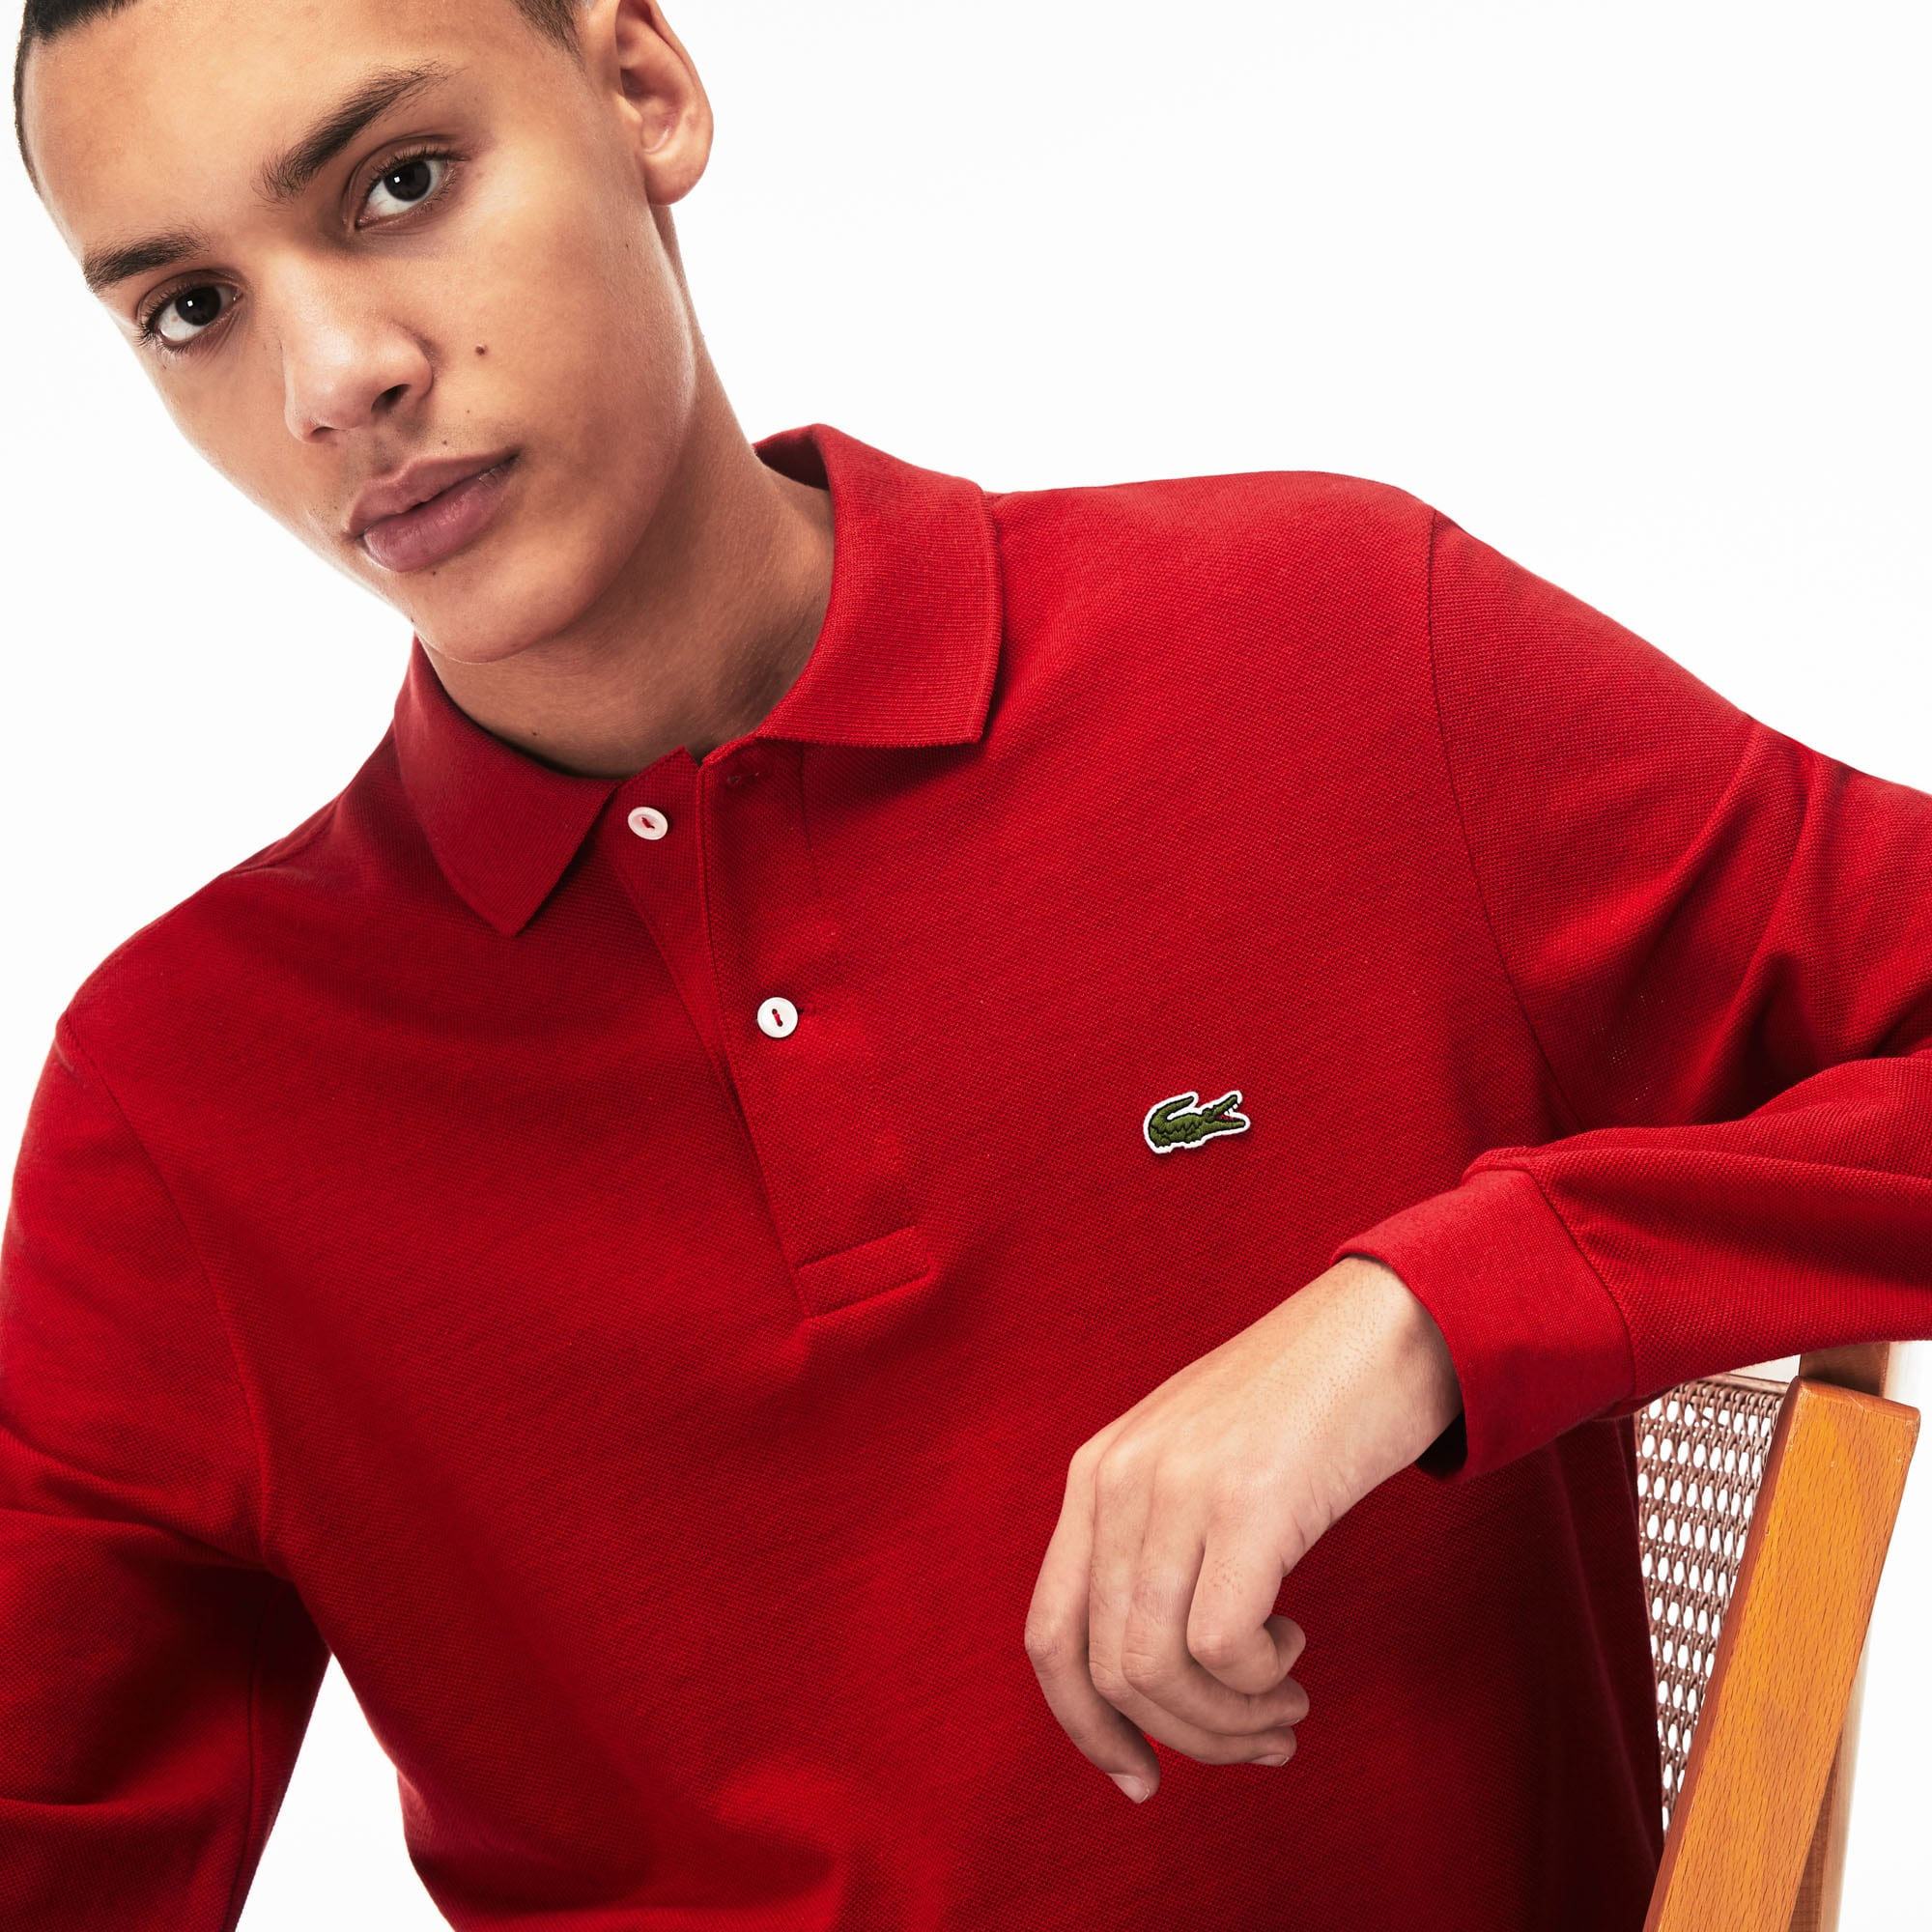 871f4cda564d7 Lacoste classic fit long-sleeve Polo Shirt in marl petit piqué